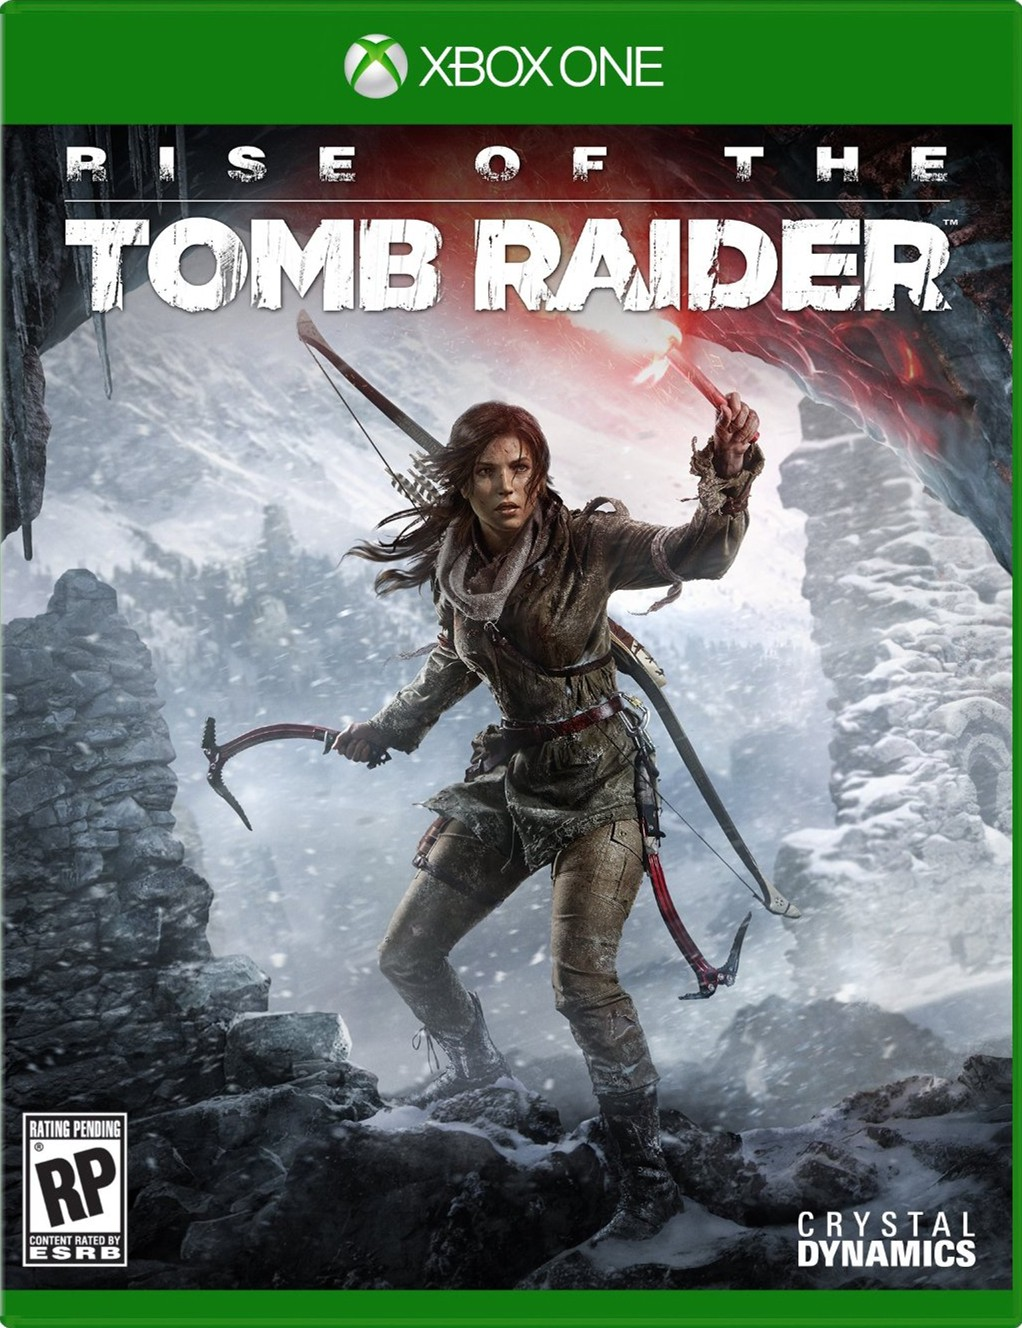 Rise of the Tomb Raider 古墓丽影:崛起